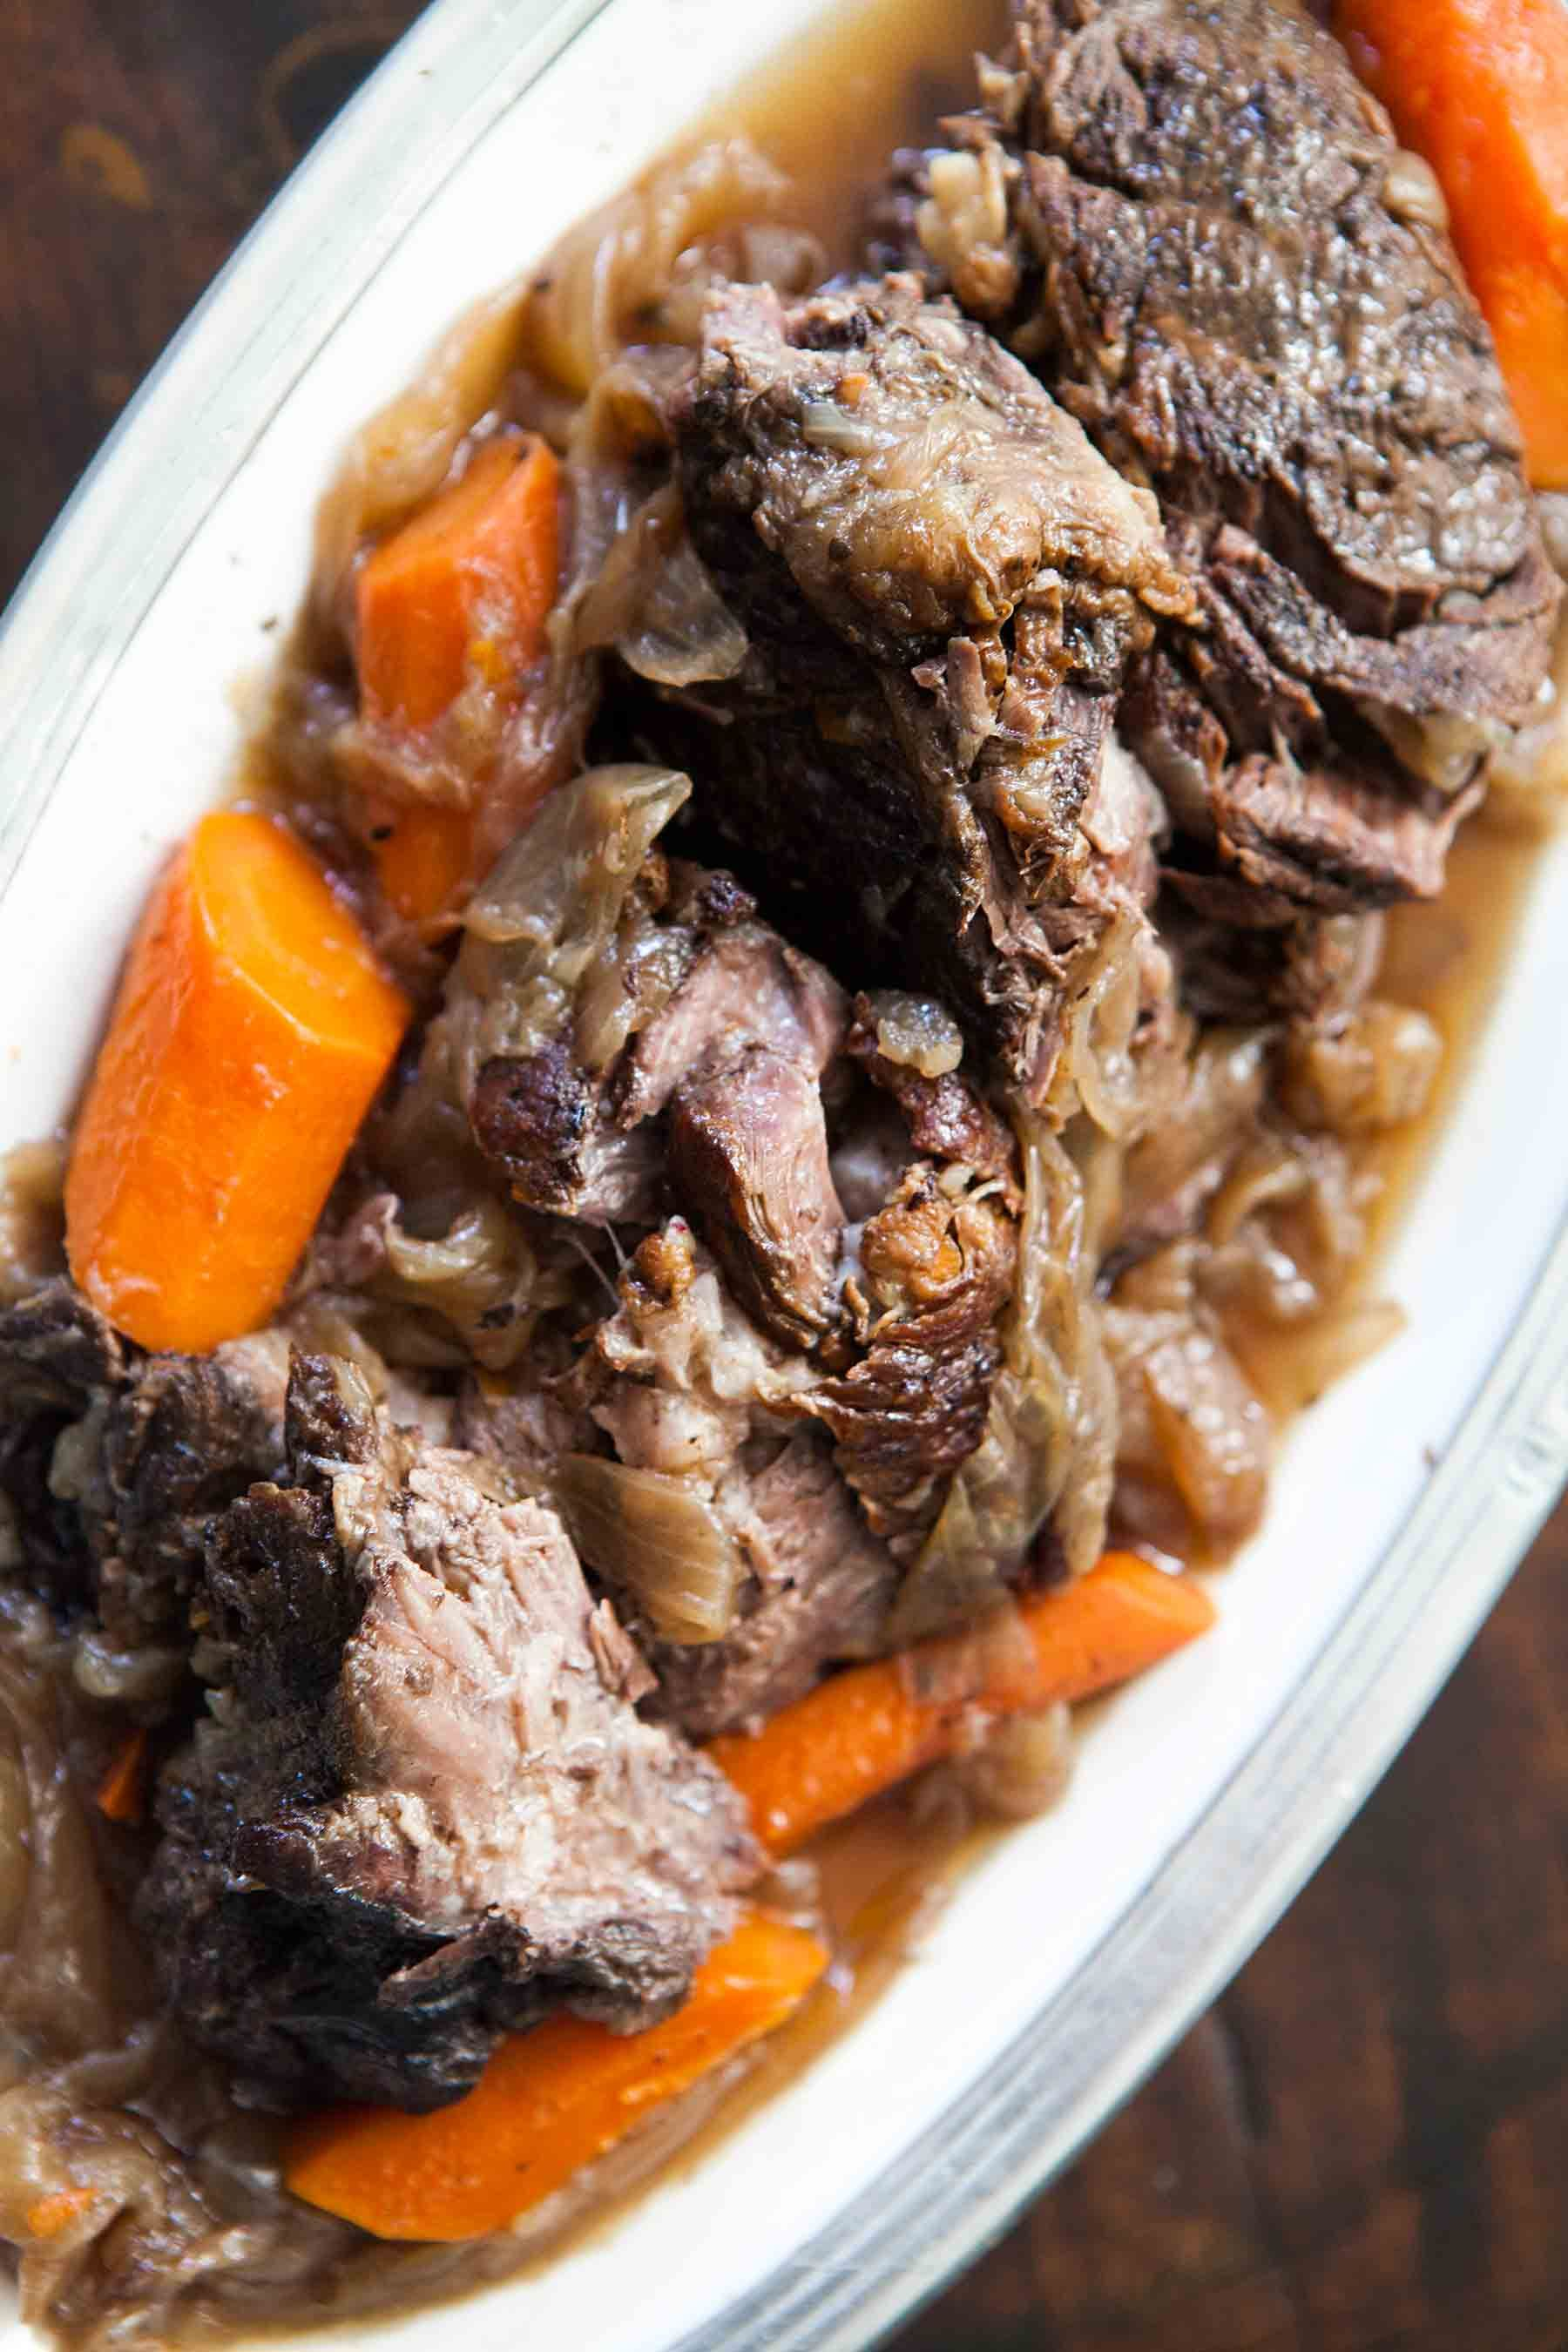 Best Beef Pot Roast Recipe Slow Cooked On Stove Top Or In Oven With